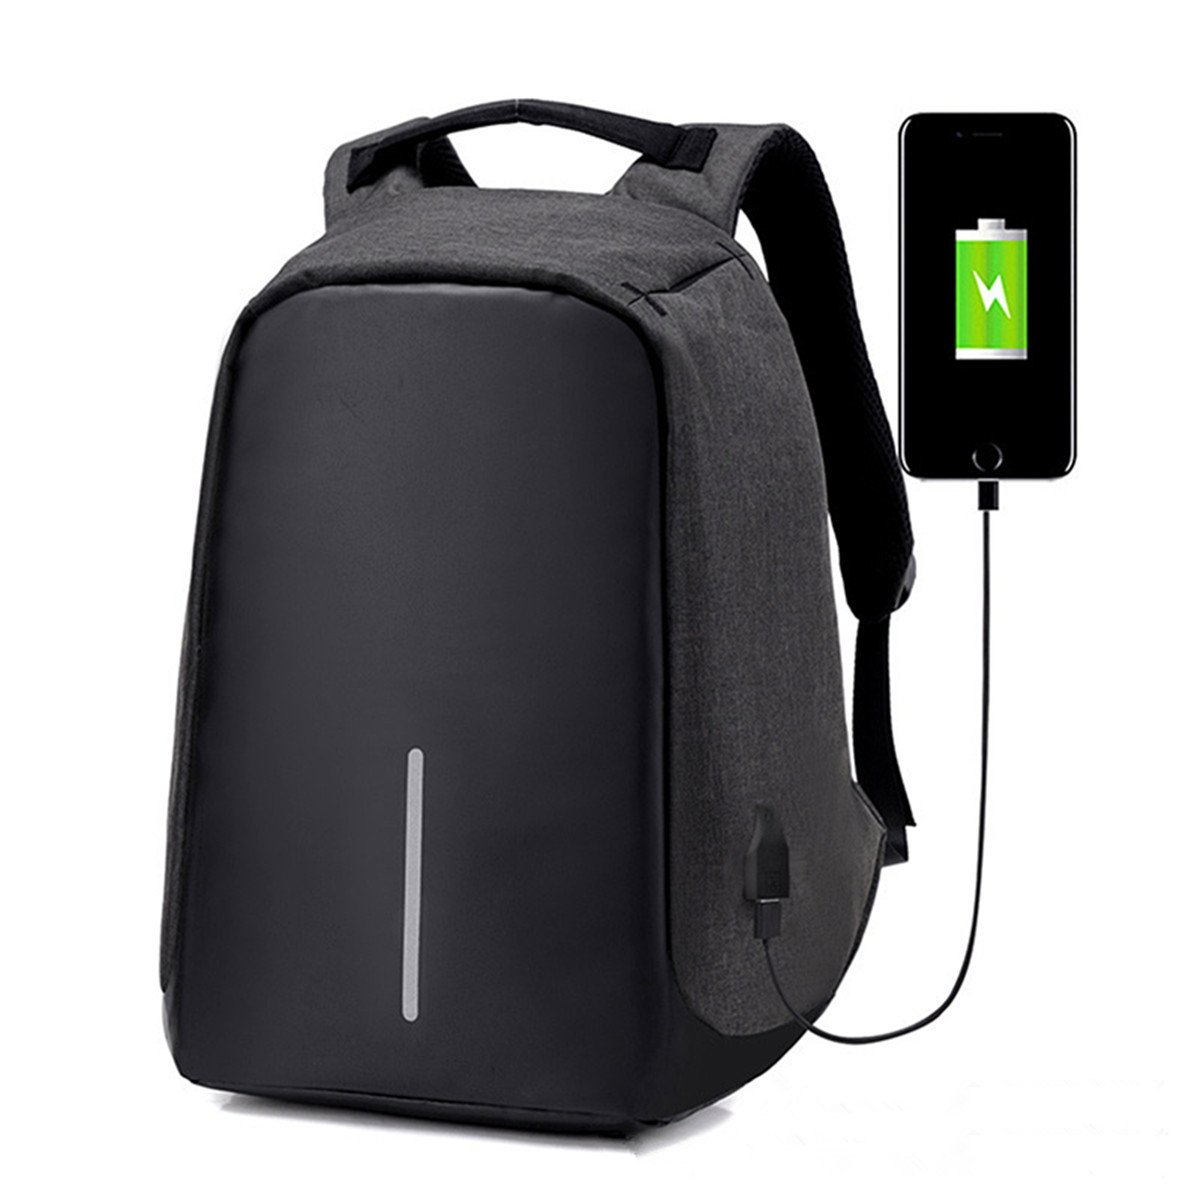 98fa601e74c6 Amazon.com: Rswsp Travel Backpack, Anti-Theft Laptop Backpack with ...